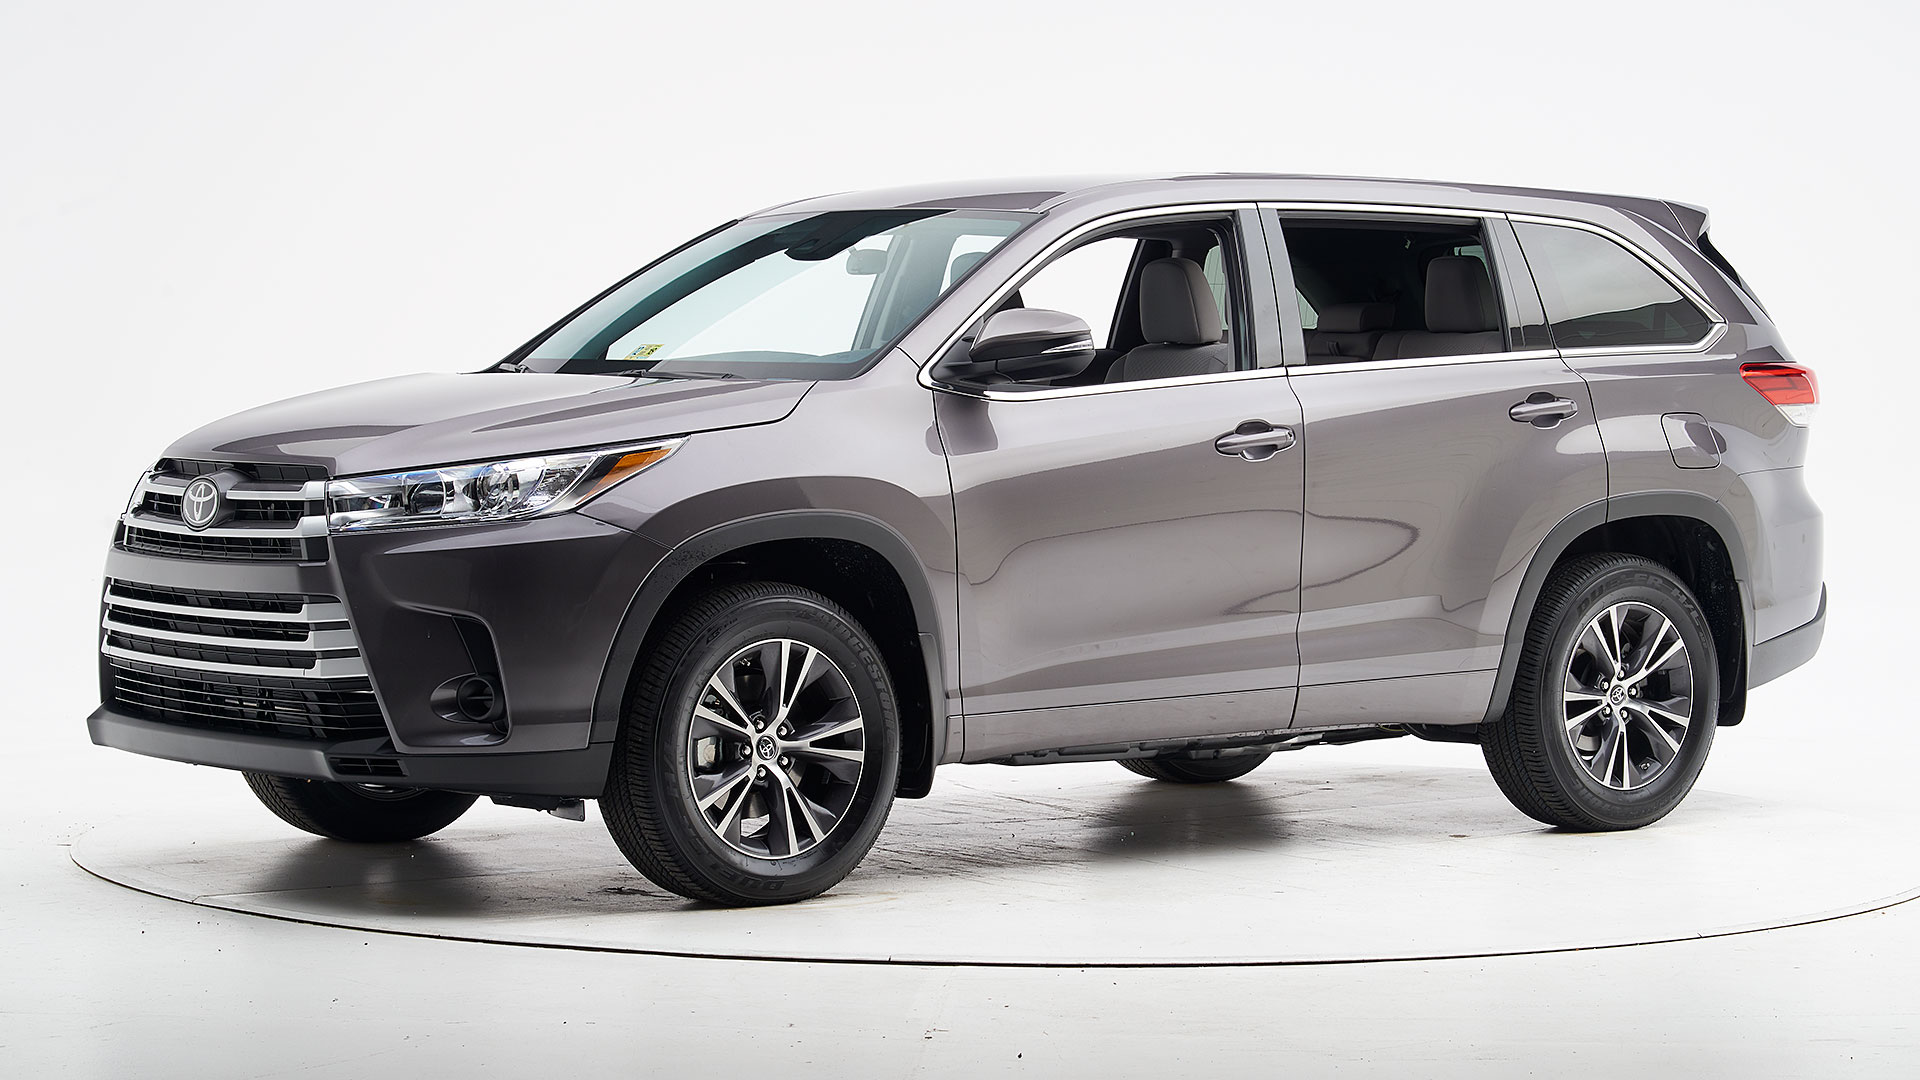 2018 Toyota Highlander 4-door SUV